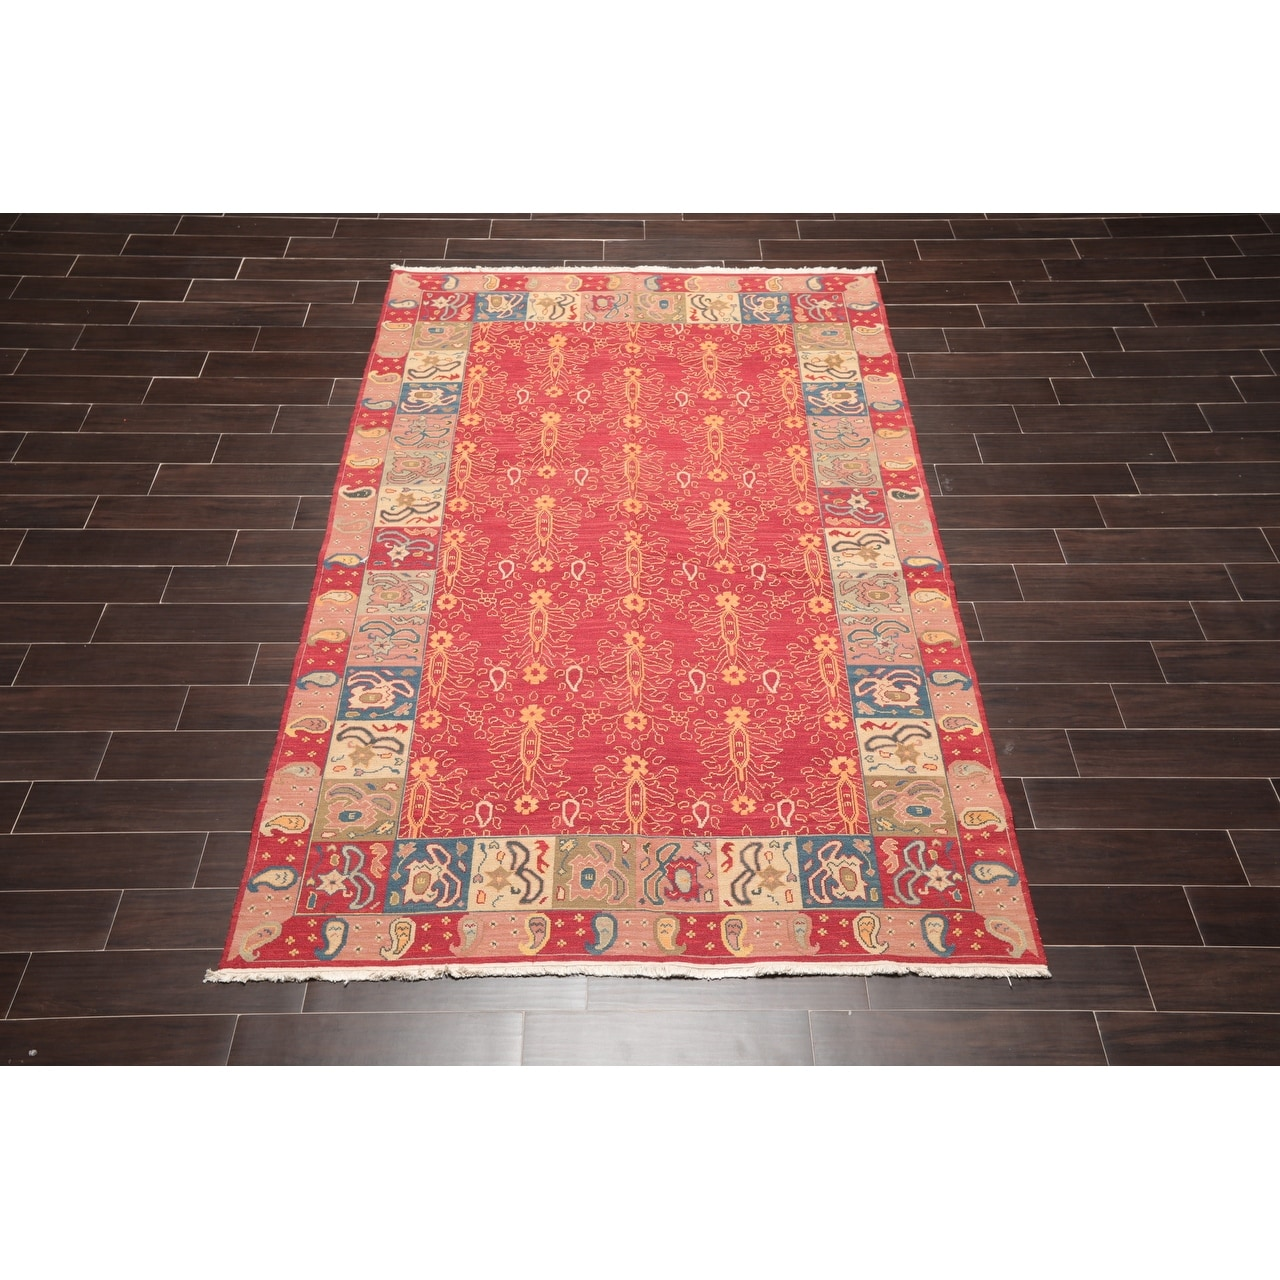 Hand Knotted Reversible Red Rust Oriental Area Rug Wool Traditional Oriental Area Rug 5x7 5 6 X 8 6 On Sale Overstock 31305148